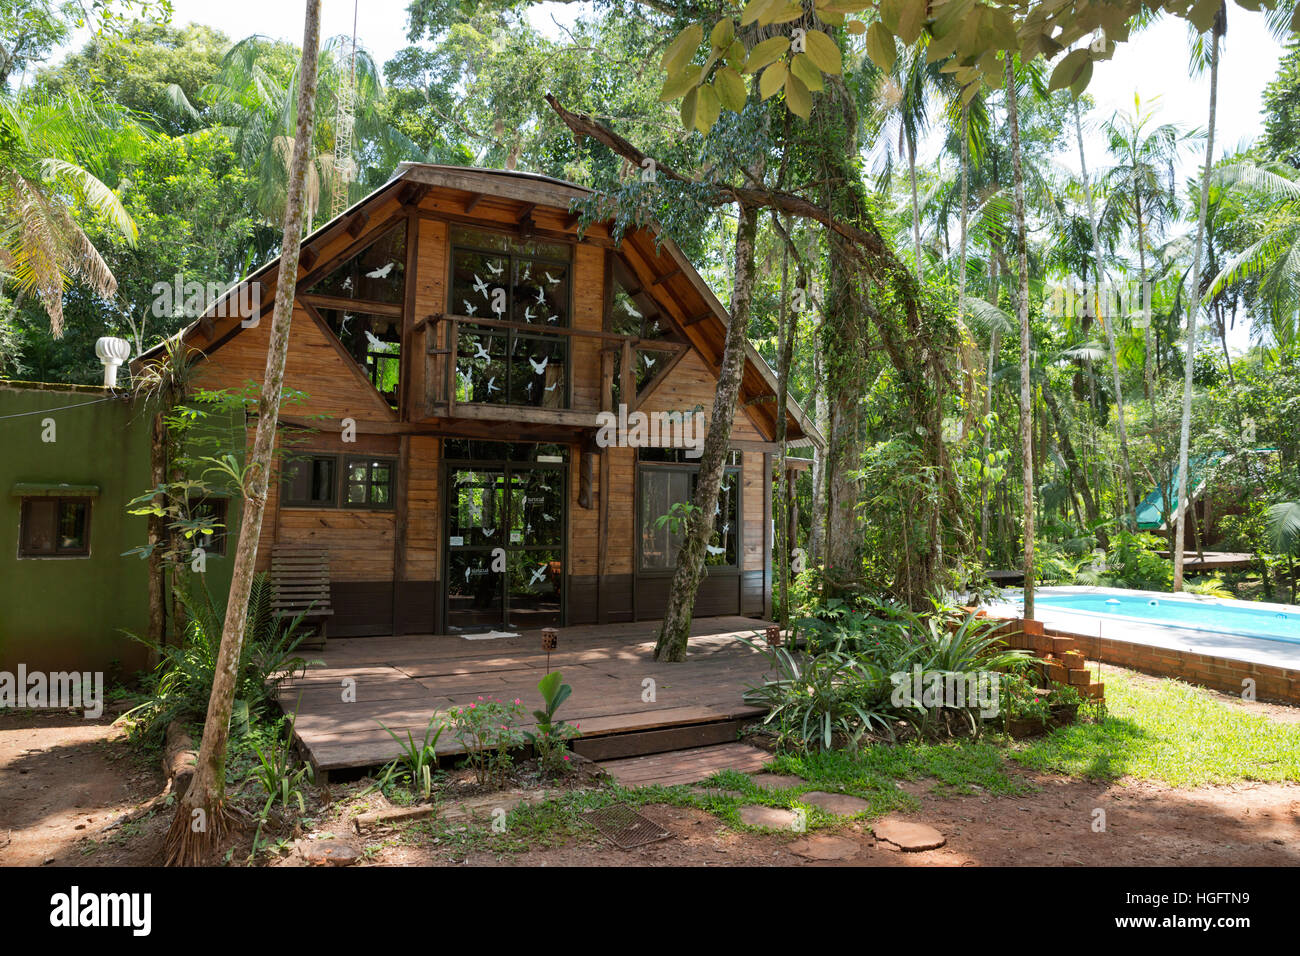 Surucua Reserva and Ecolodge in the rainforest, Andresito, Misiones Province, Argentina, South America - Stock Image